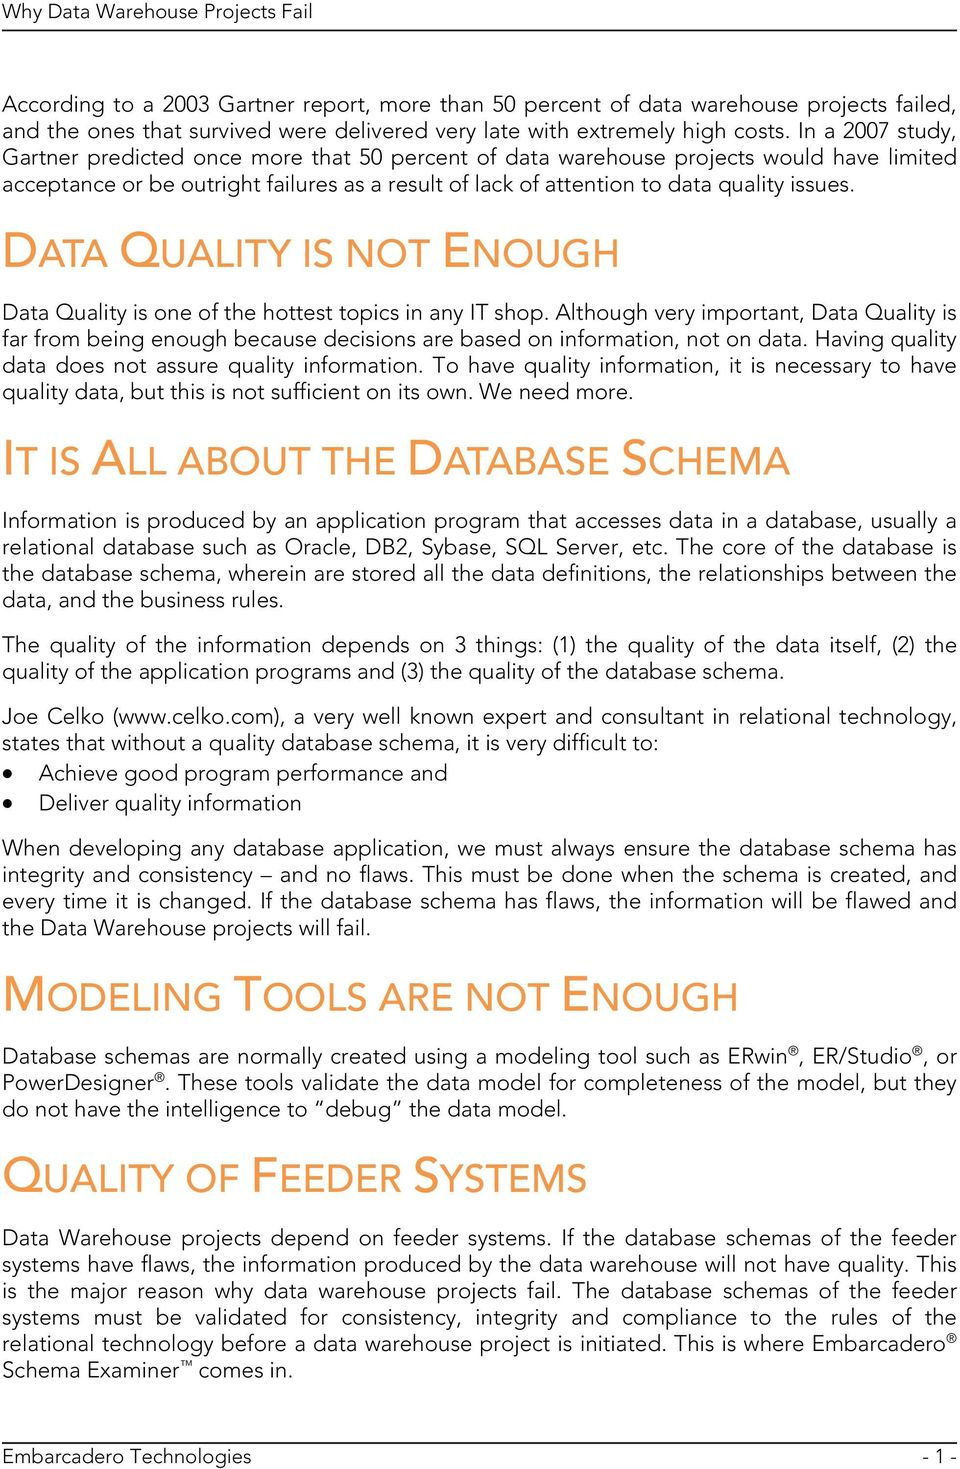 DATA QUALITY IS NOT ENOUGH Data Quality is one of the hottest topics in any IT shop.